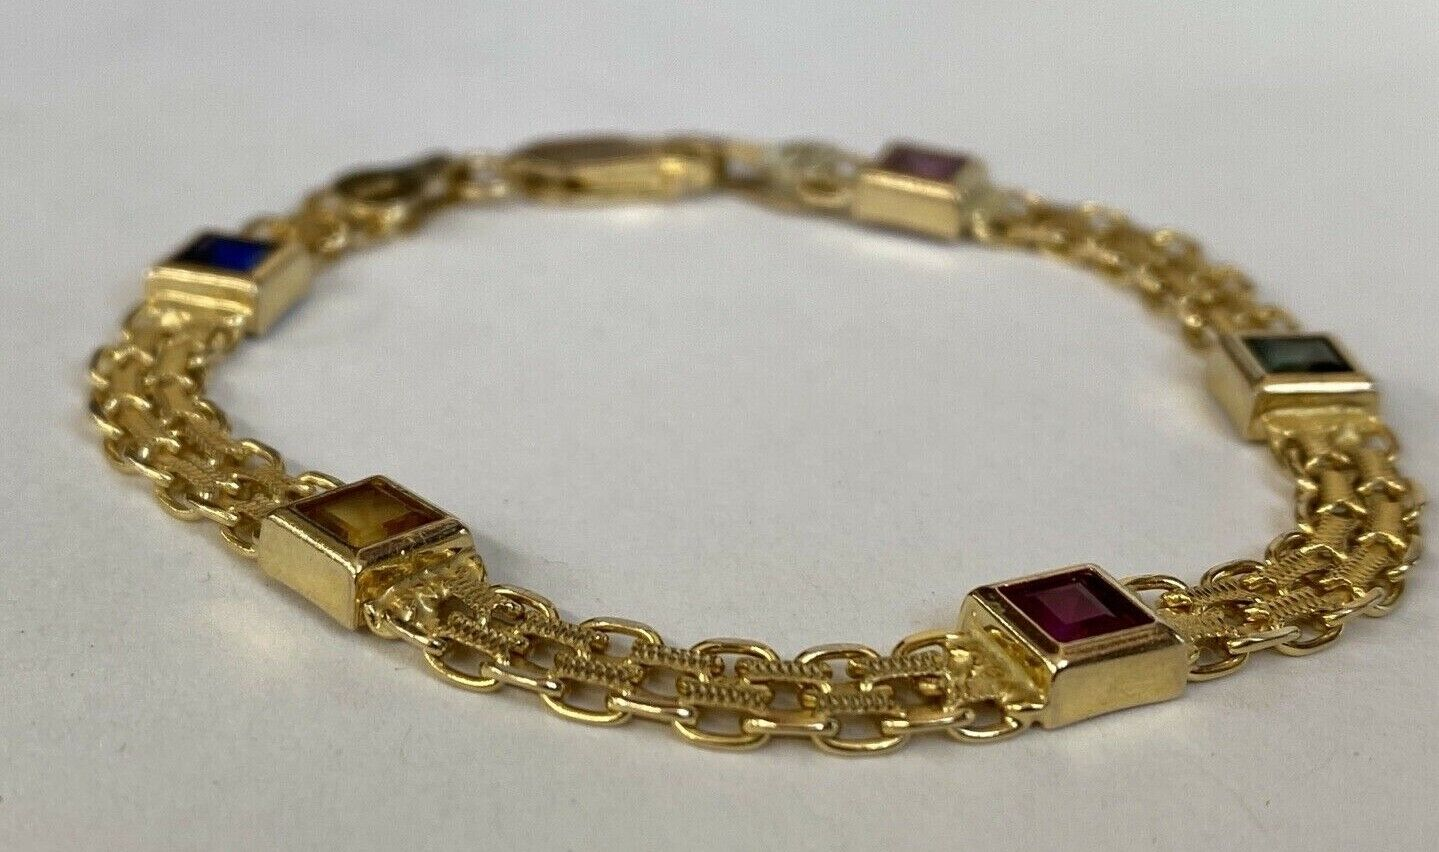 14k Yellow Gold w/ Colored Stones Women's Bracelet 6.3mm  7 1/4 Inches PRETTY!!! 2